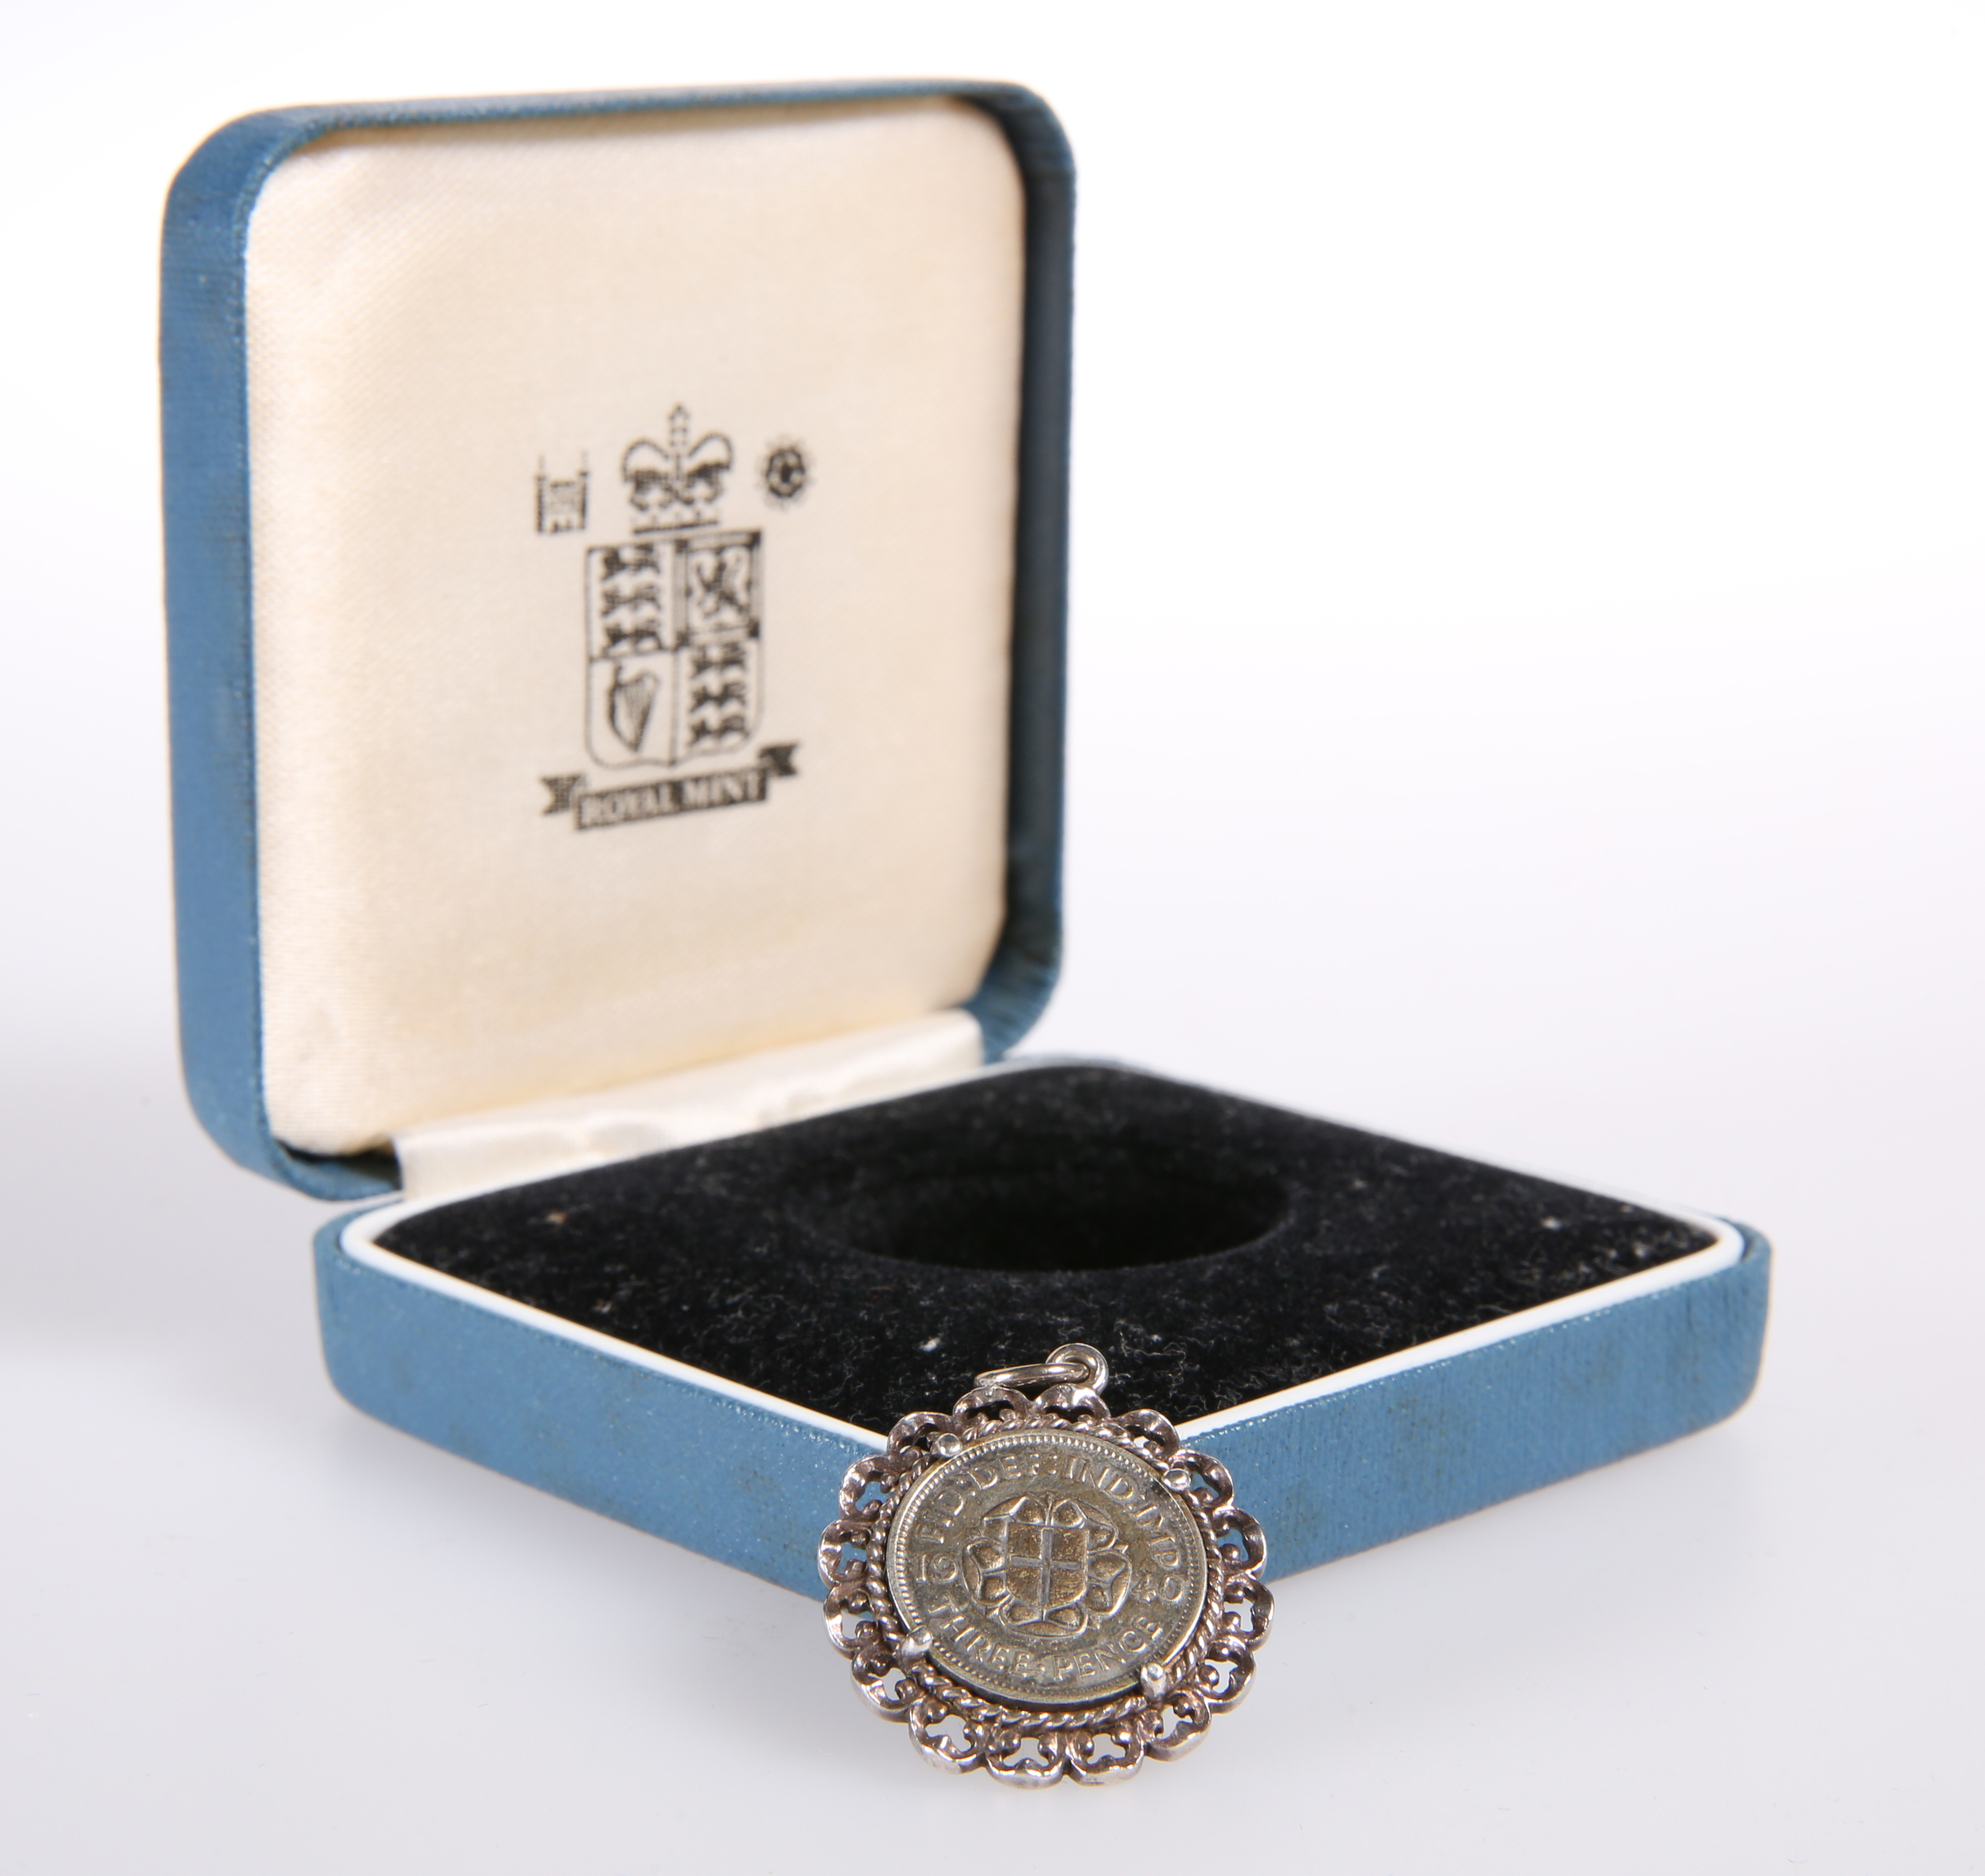 A GEORGE VI SILVER THREE-PENCE BIT, in pendant mount - Image 2 of 2